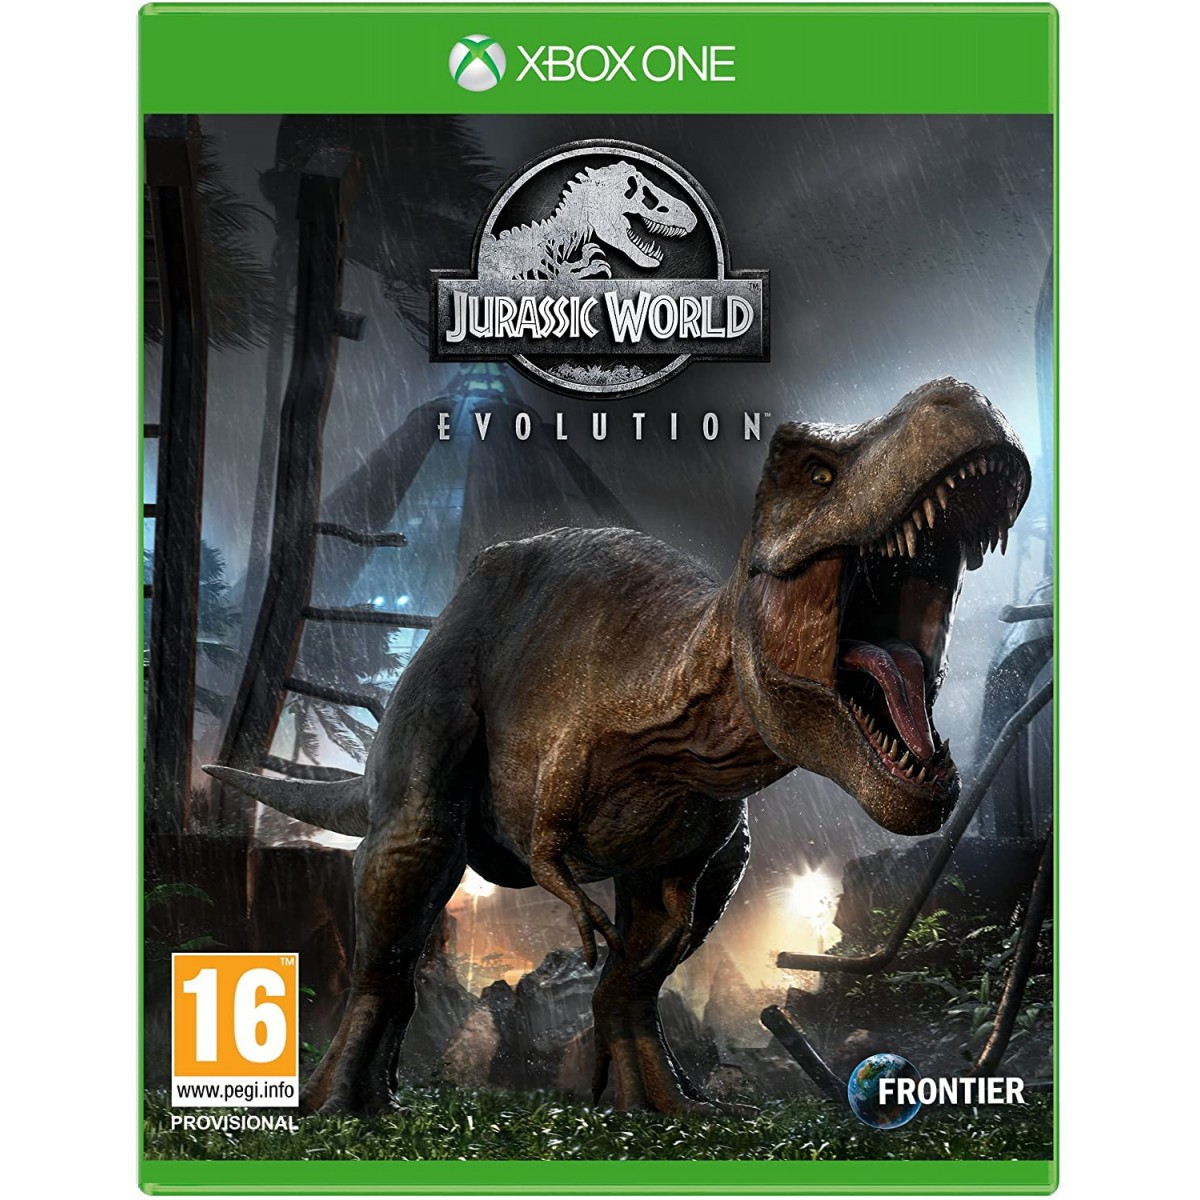 Videogame Jurassic World Evolution per Xbox One